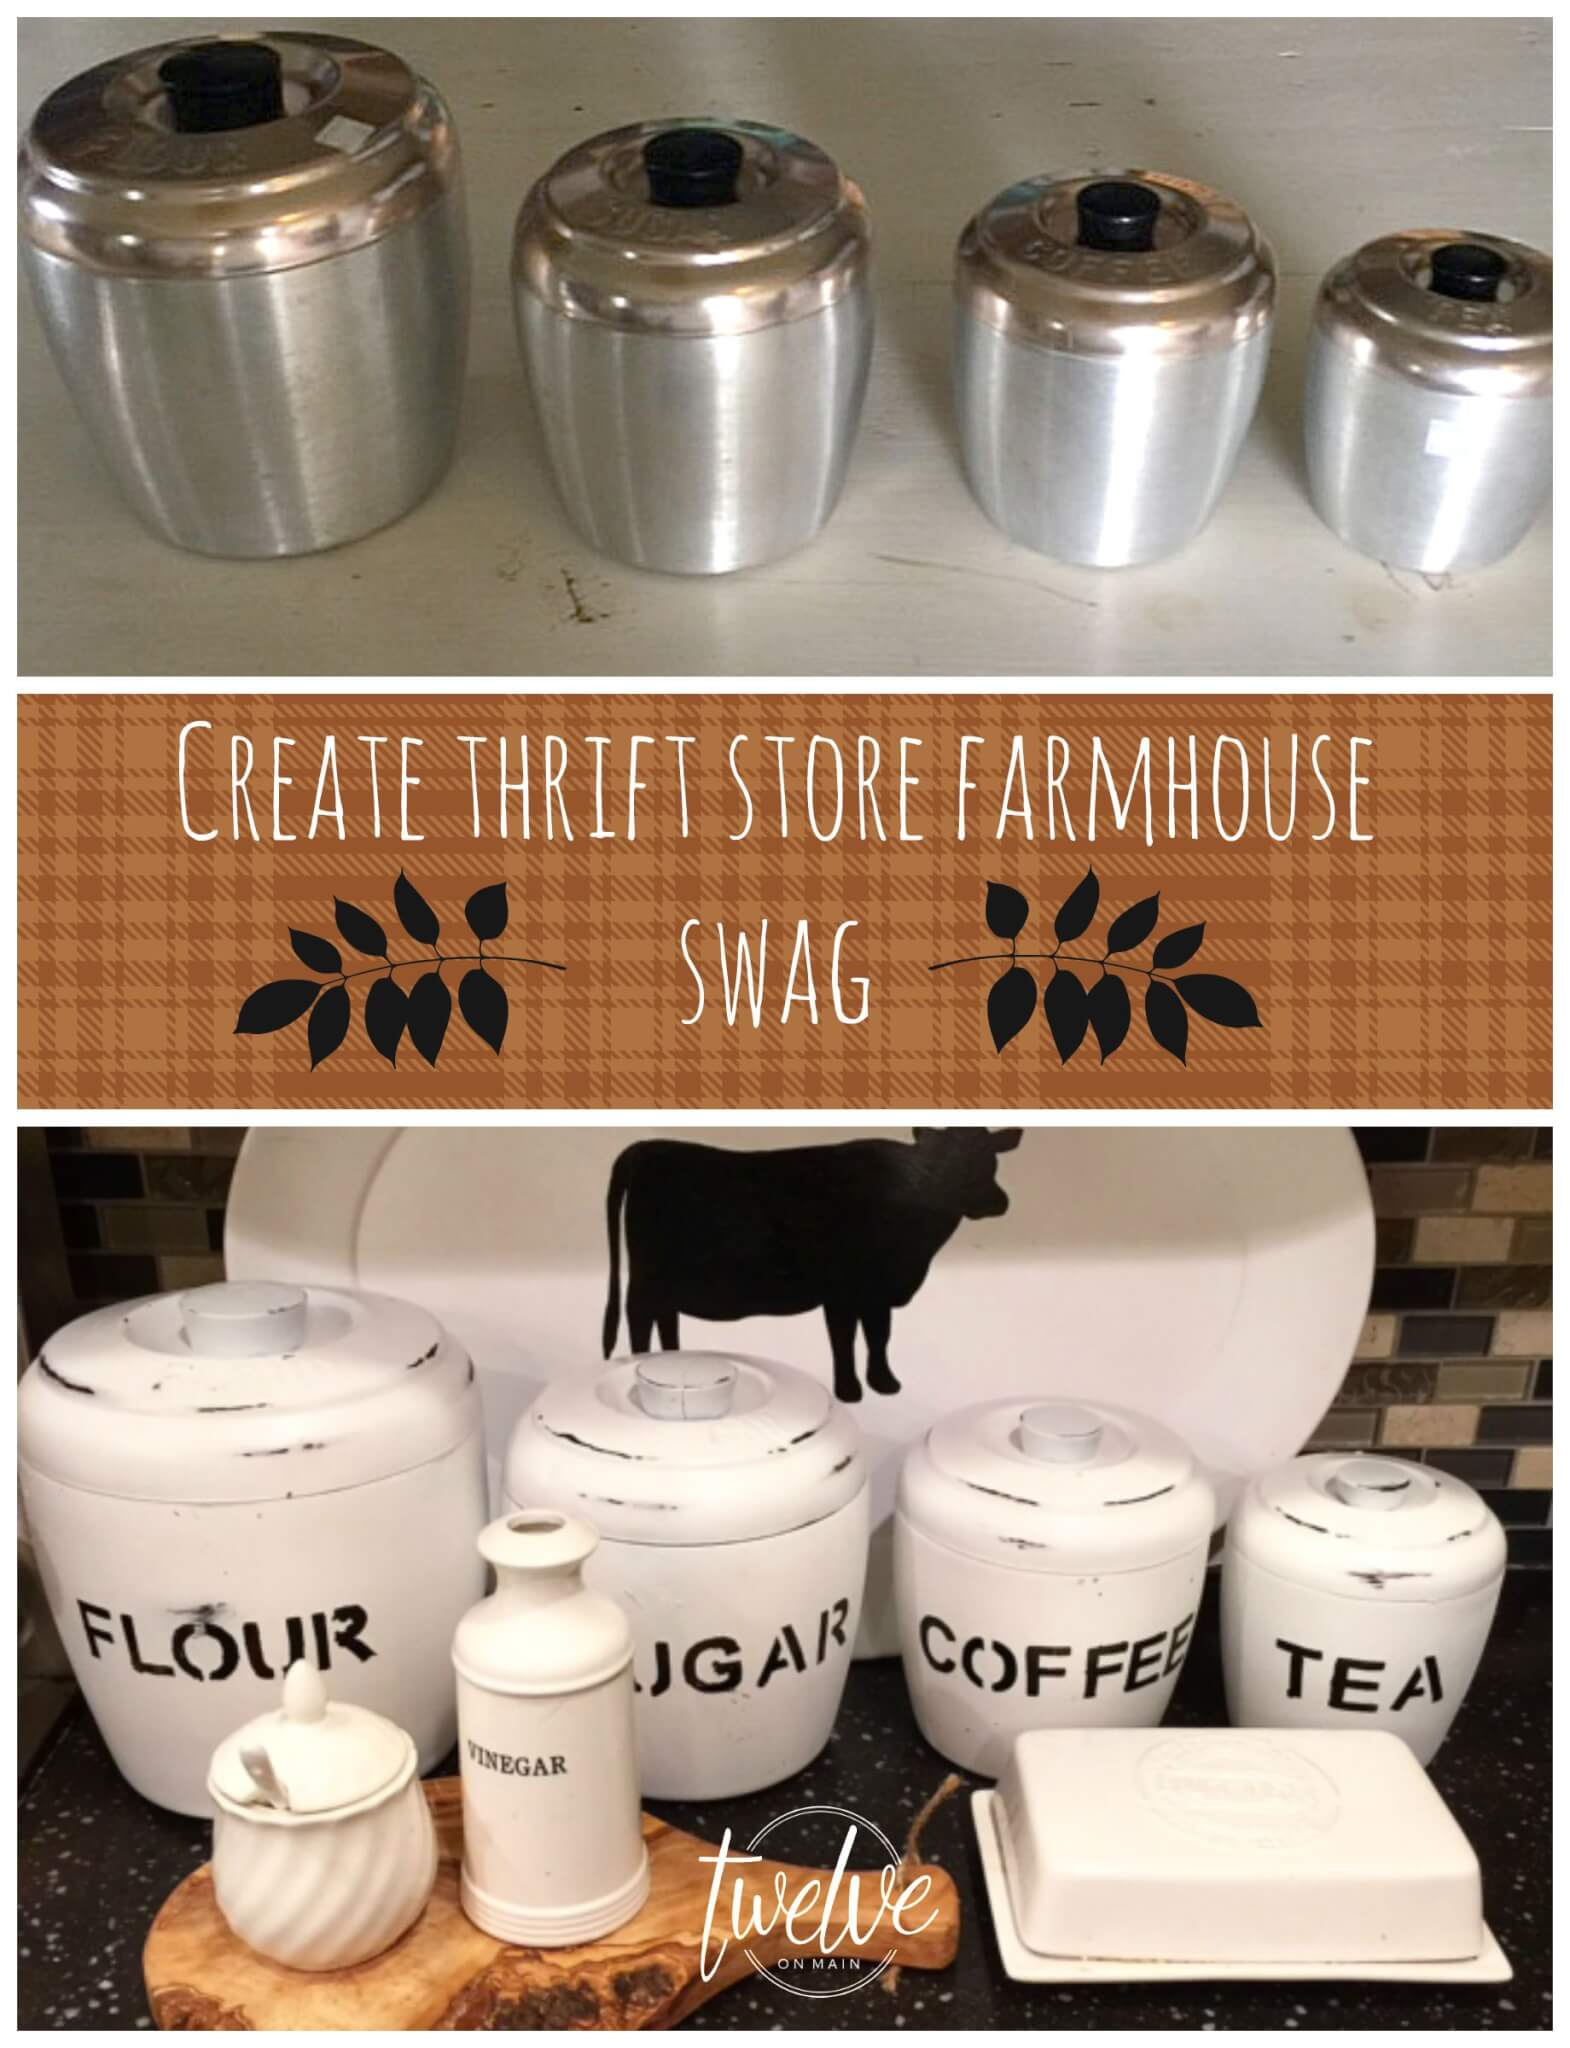 Thrift Store Farmhouse Swag Series!